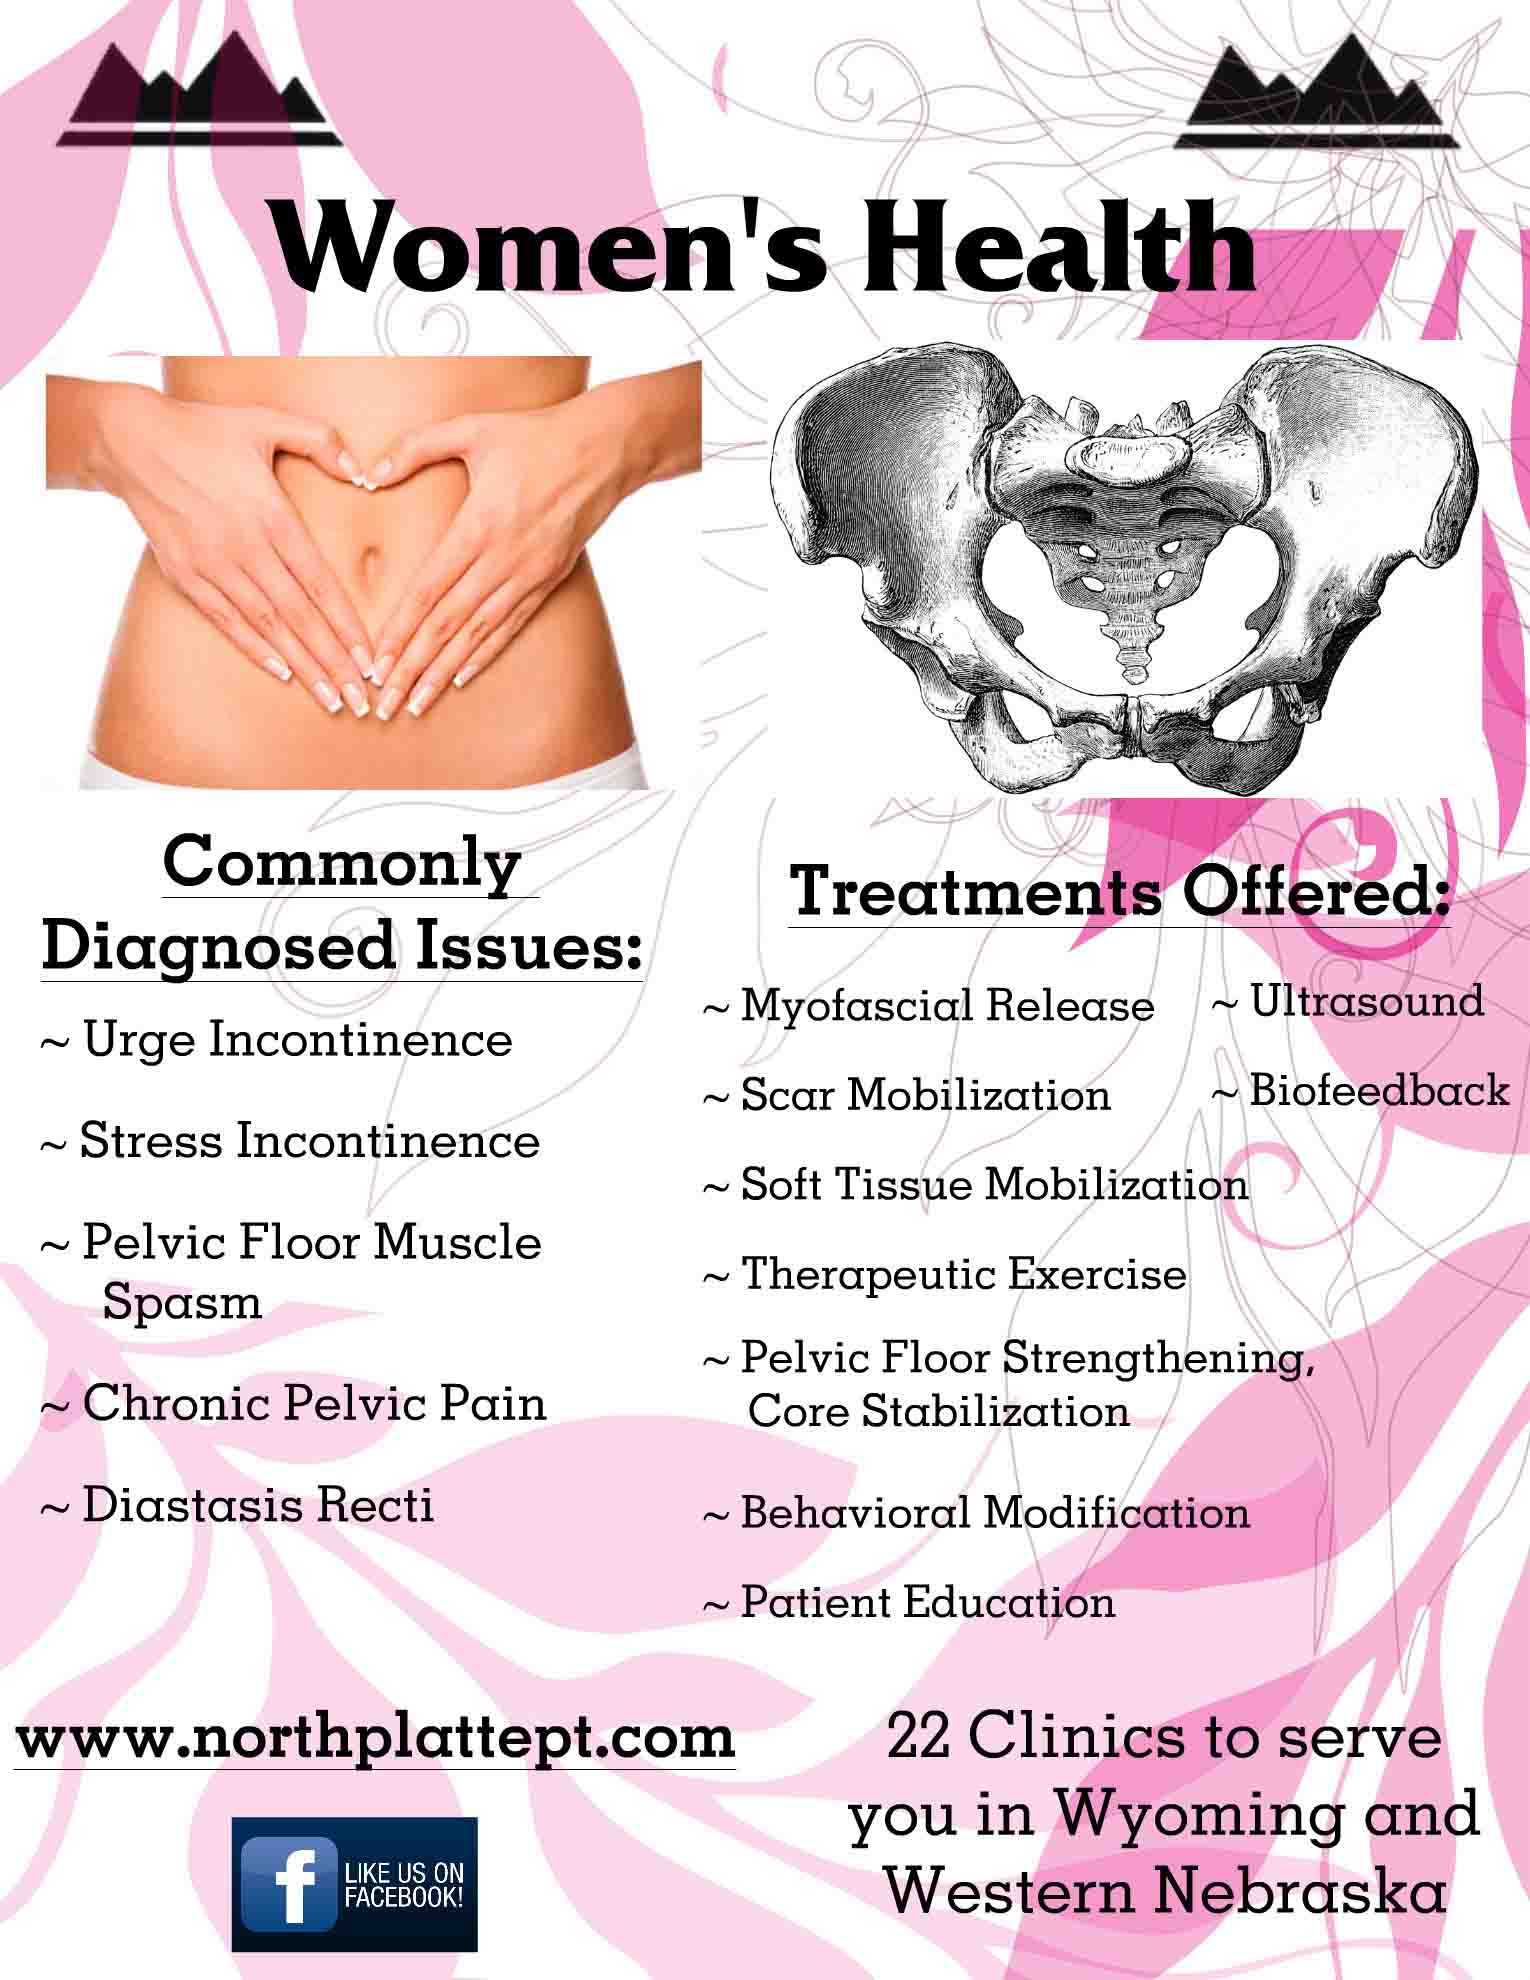 Health physical therapy womens - Health Physical Therapy Womens 0